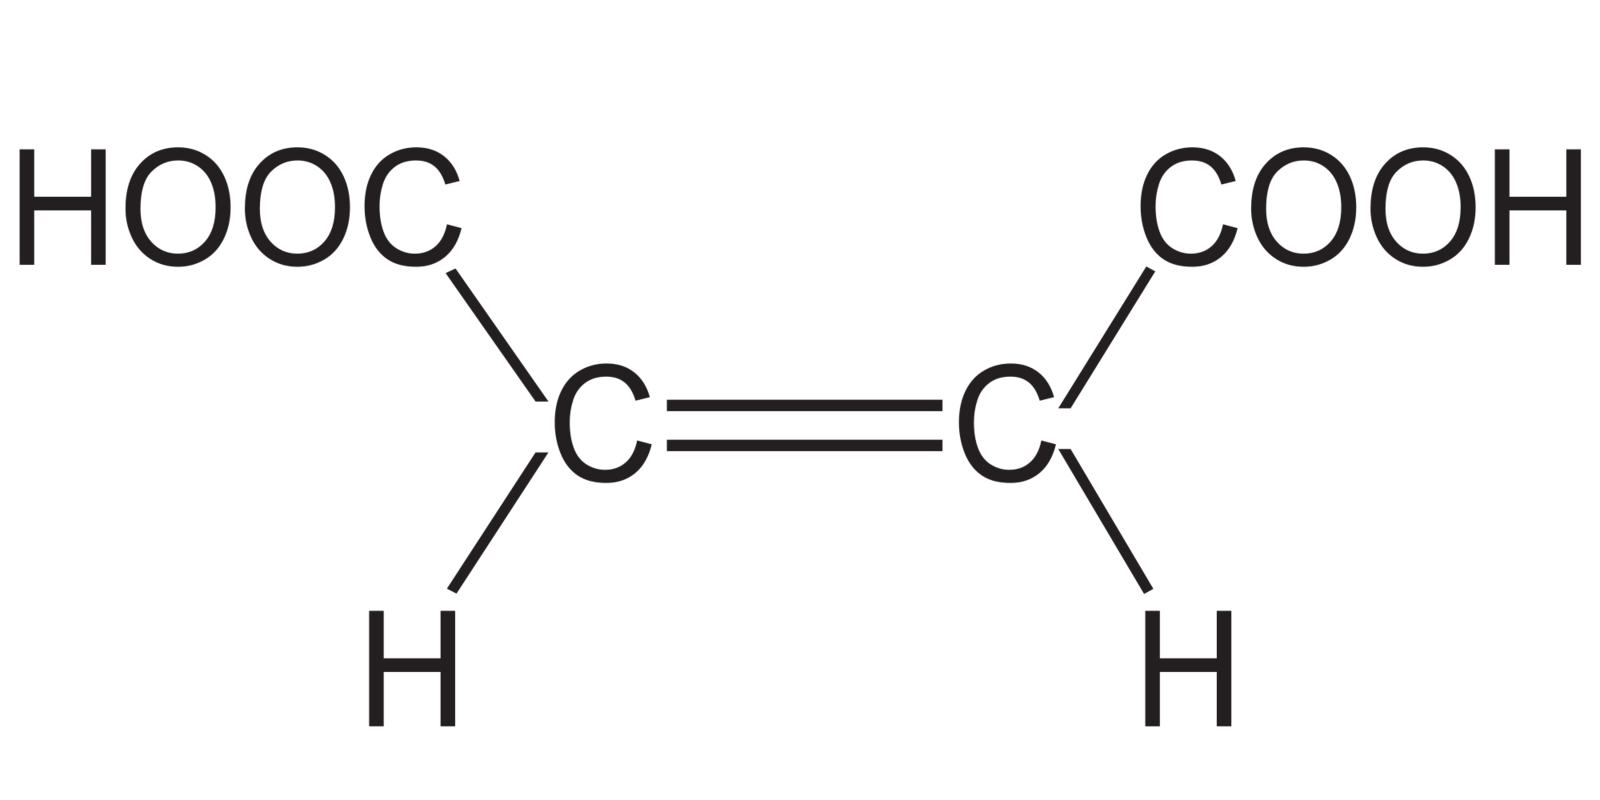 maleic acid to fumaric acid Hi i was just wondering if somebody could help me with the reaction mechanism of maleic acid - fumaric acid cis/trans isomerismi know the two isomers and have guessed some of the reaction but i am unsure if it is right or noti need it for.